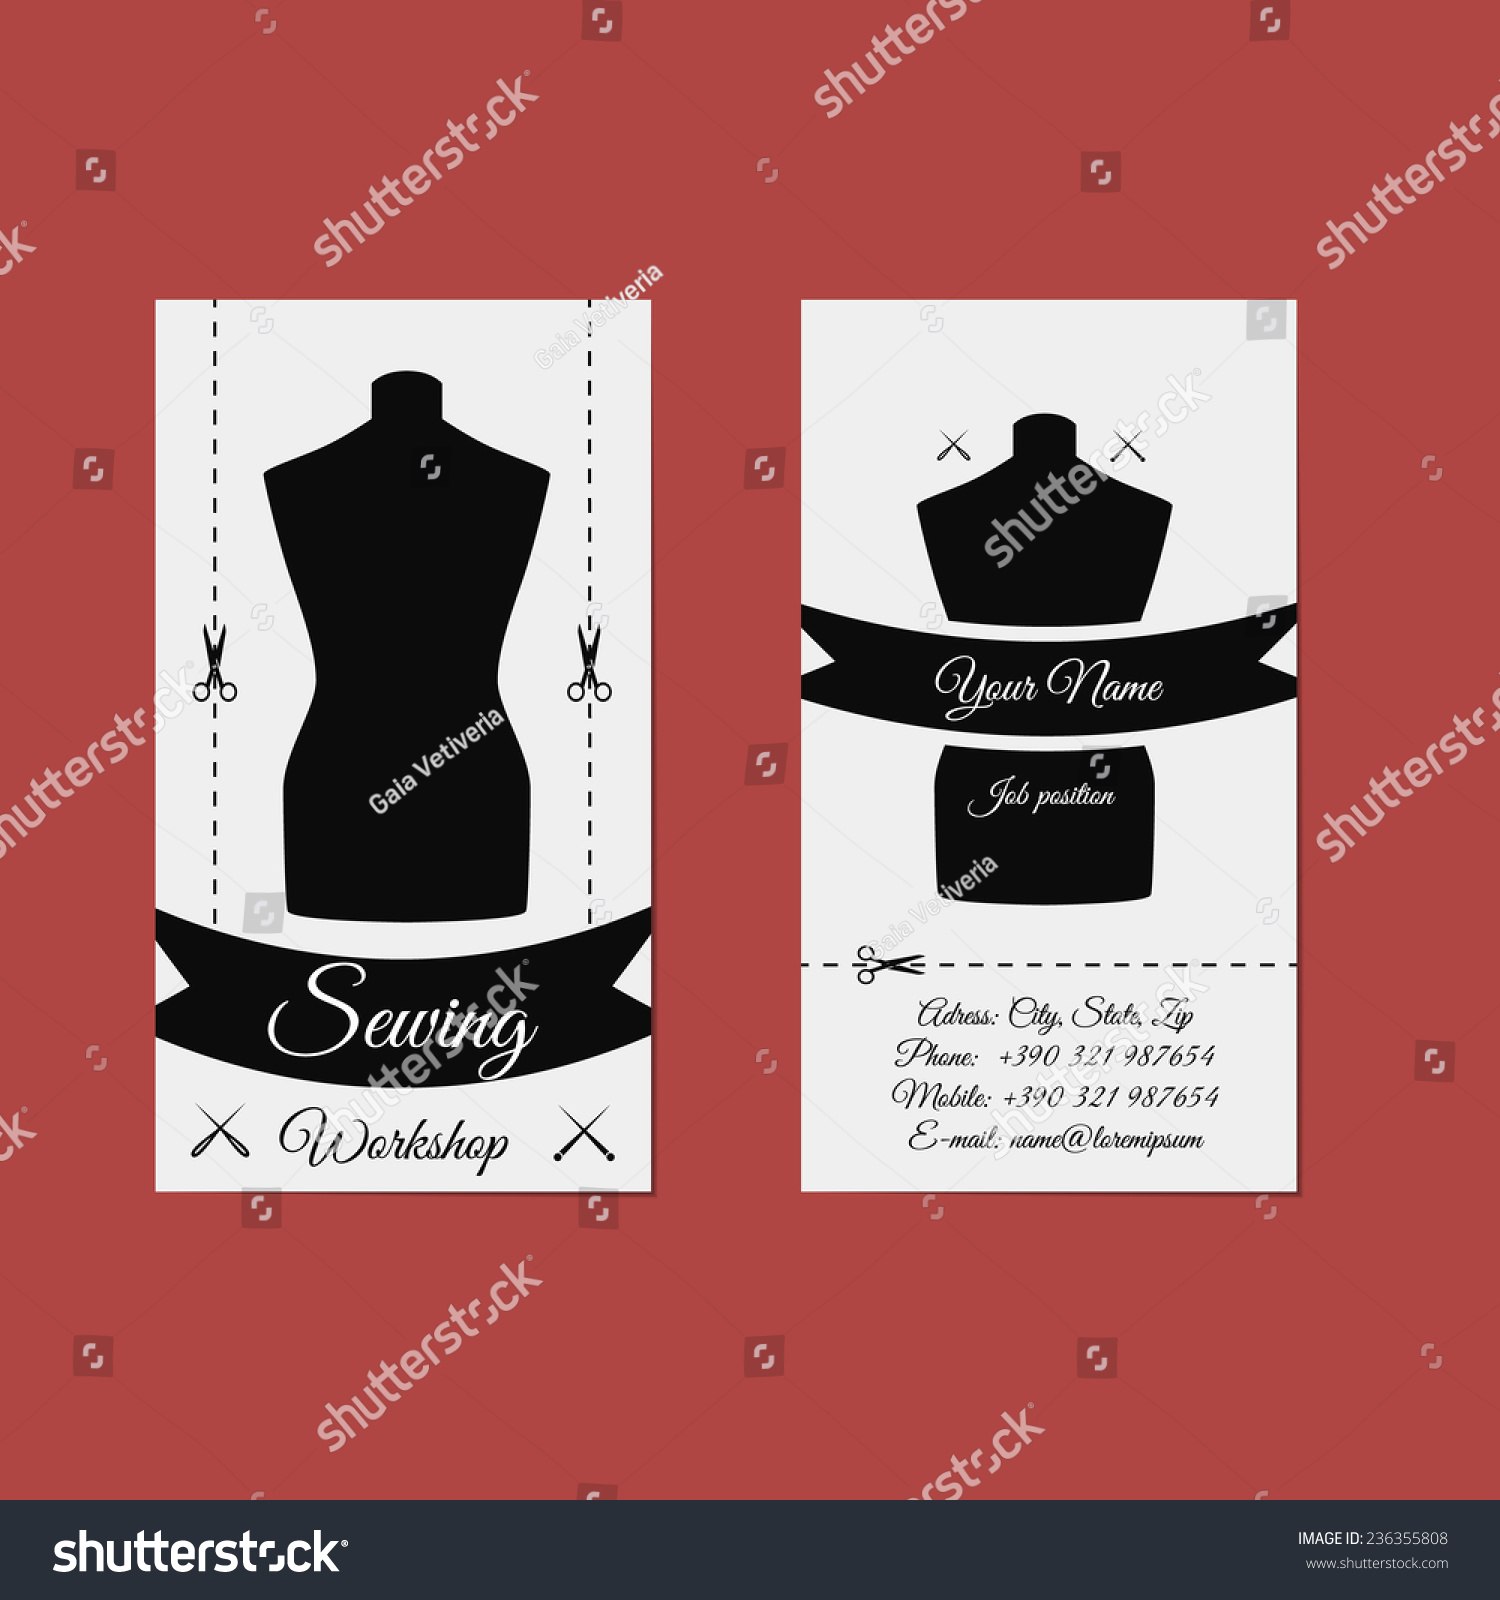 Excellent Seamstress Business Cards Photos - Business Card Ideas ...